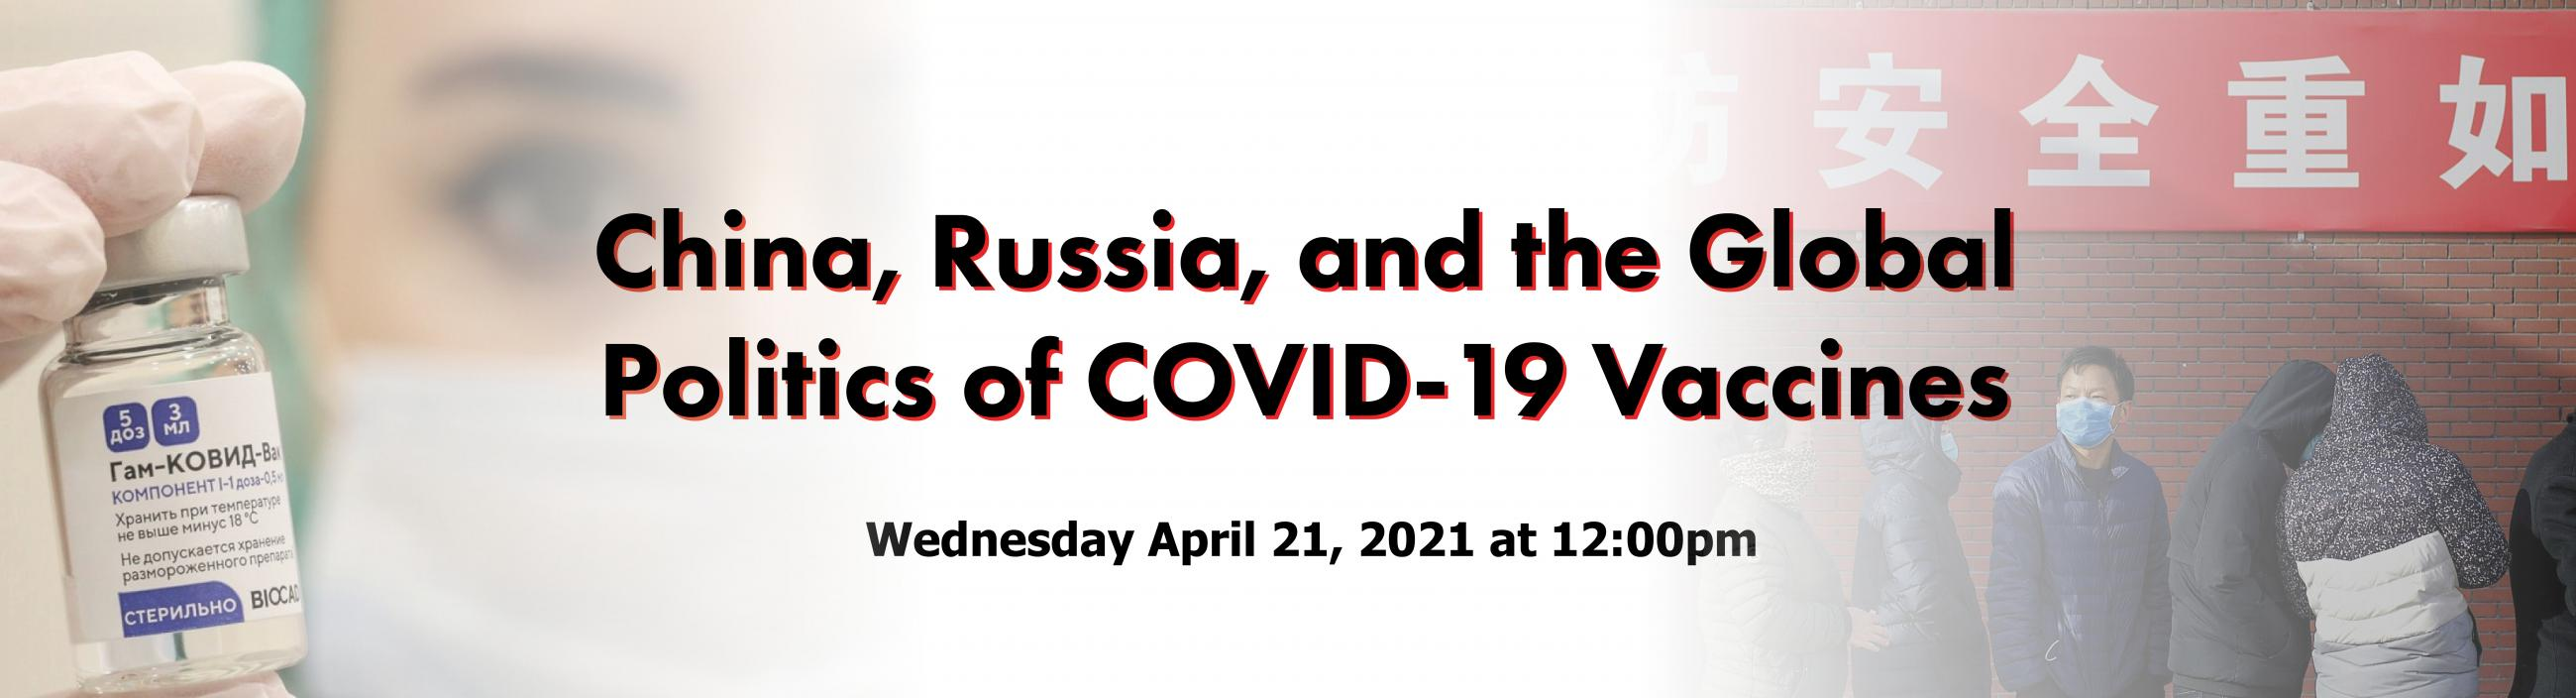 China, Russia, and the Global Politics of COVID-19 Vaccines